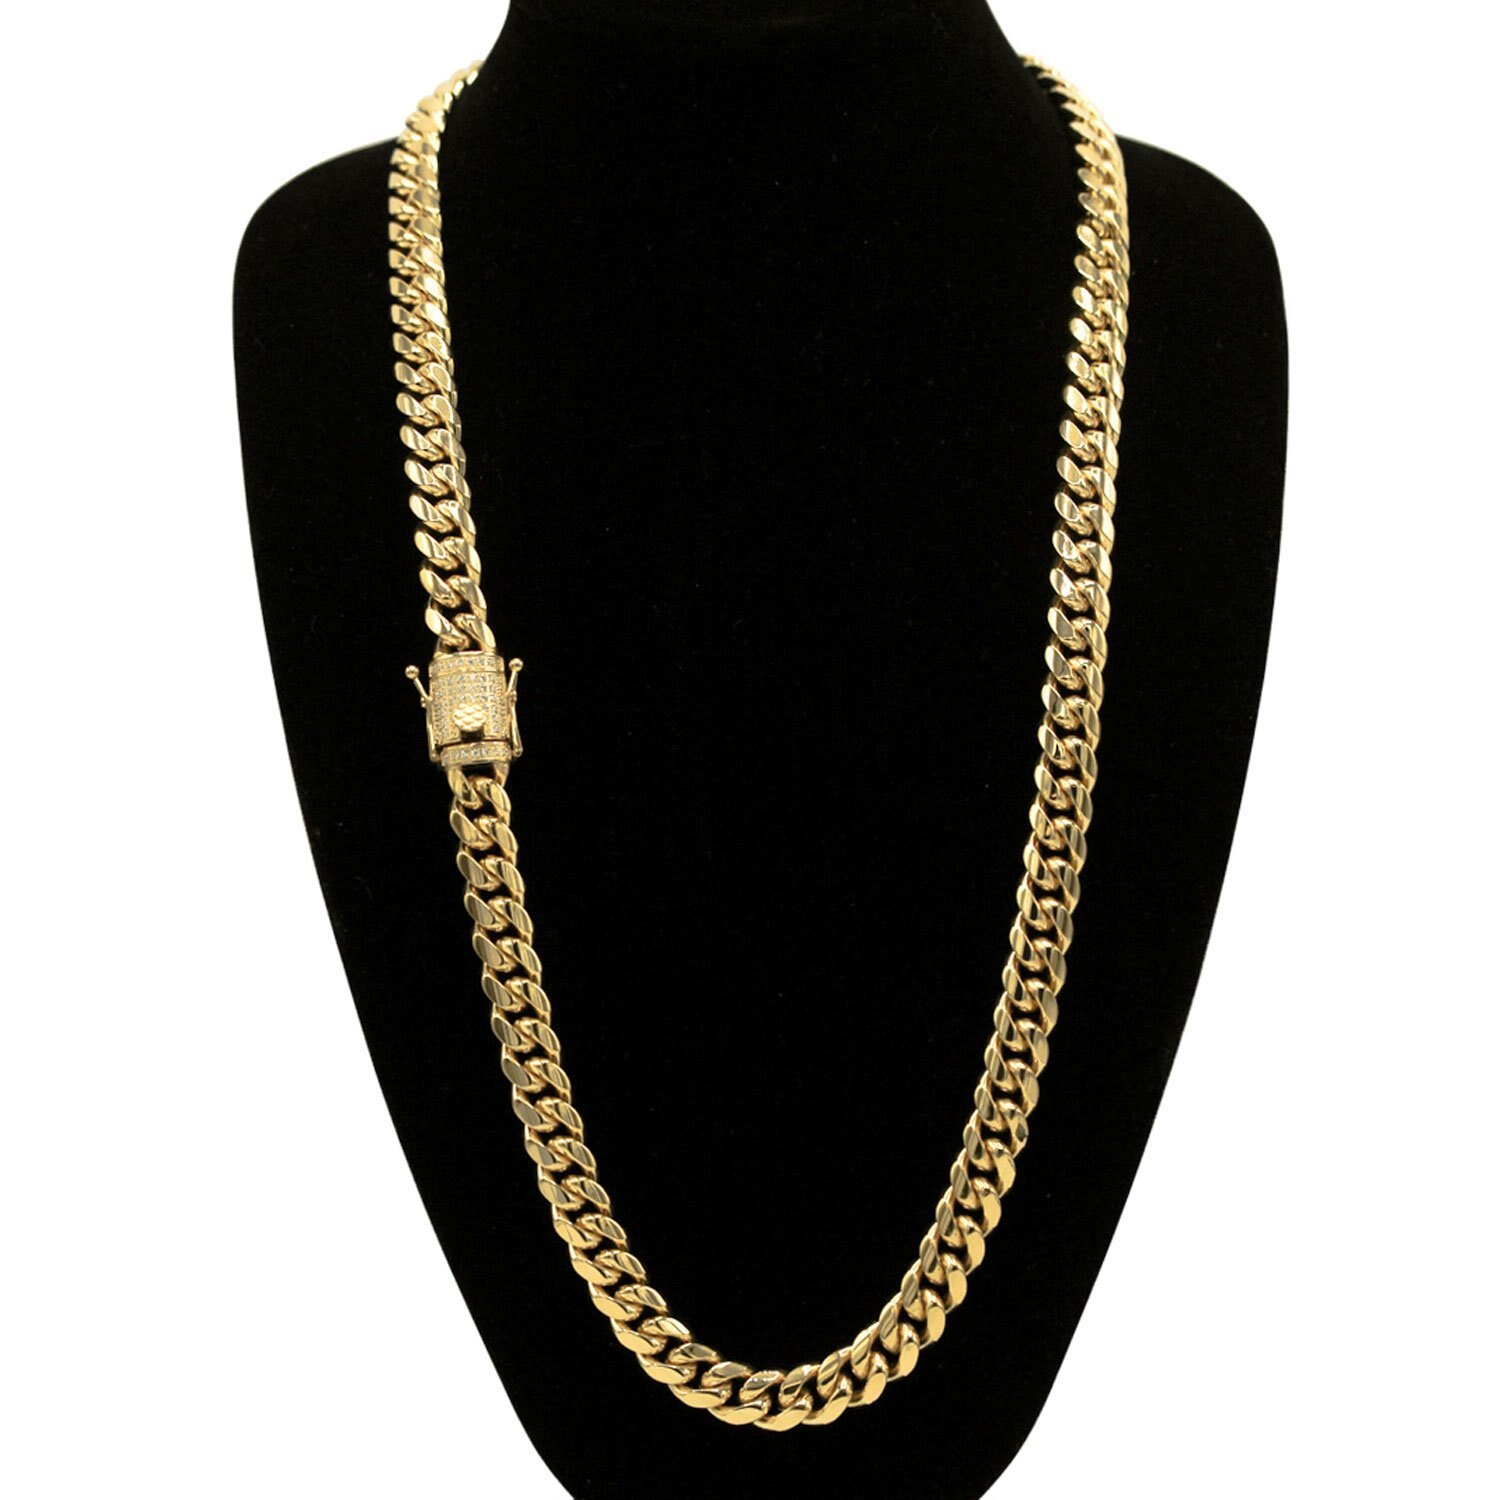 c7ef1a8149d5c Cuban Link Necklace Bracelet Set Gold Plated Cubic Zirconia Box Clasp Miami  Cuban Chain Stainless Steel Fashion Jewelry 10mm 12mm 14mm